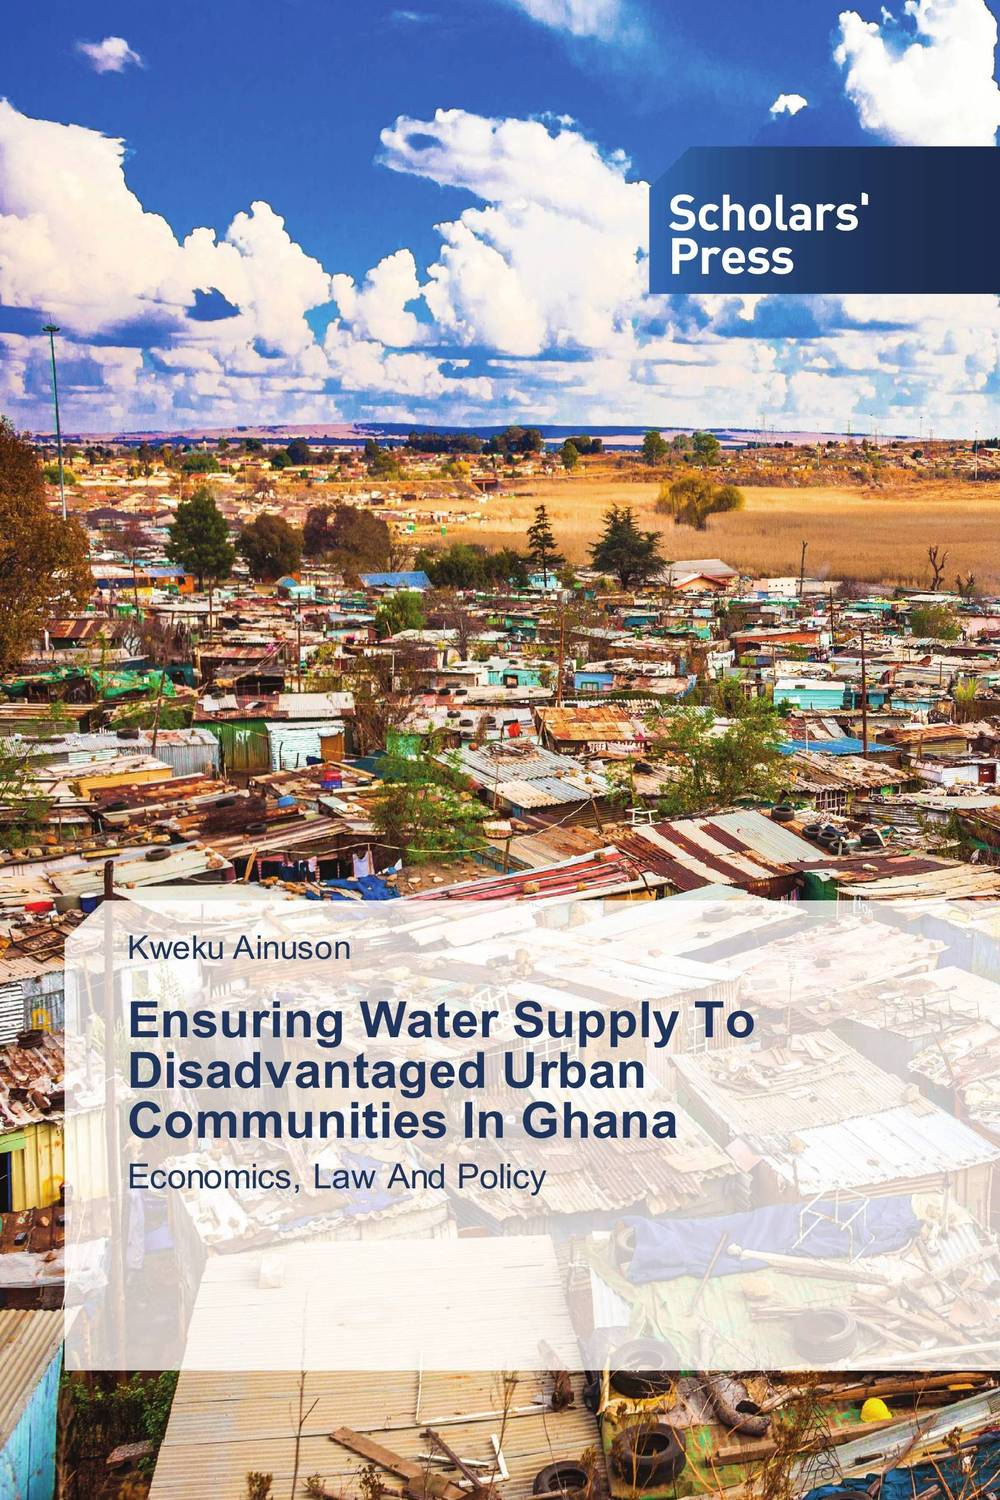 Ensuring Water Supply To Disadvantaged Urban Communities In Ghana public parks – the key to livable communities